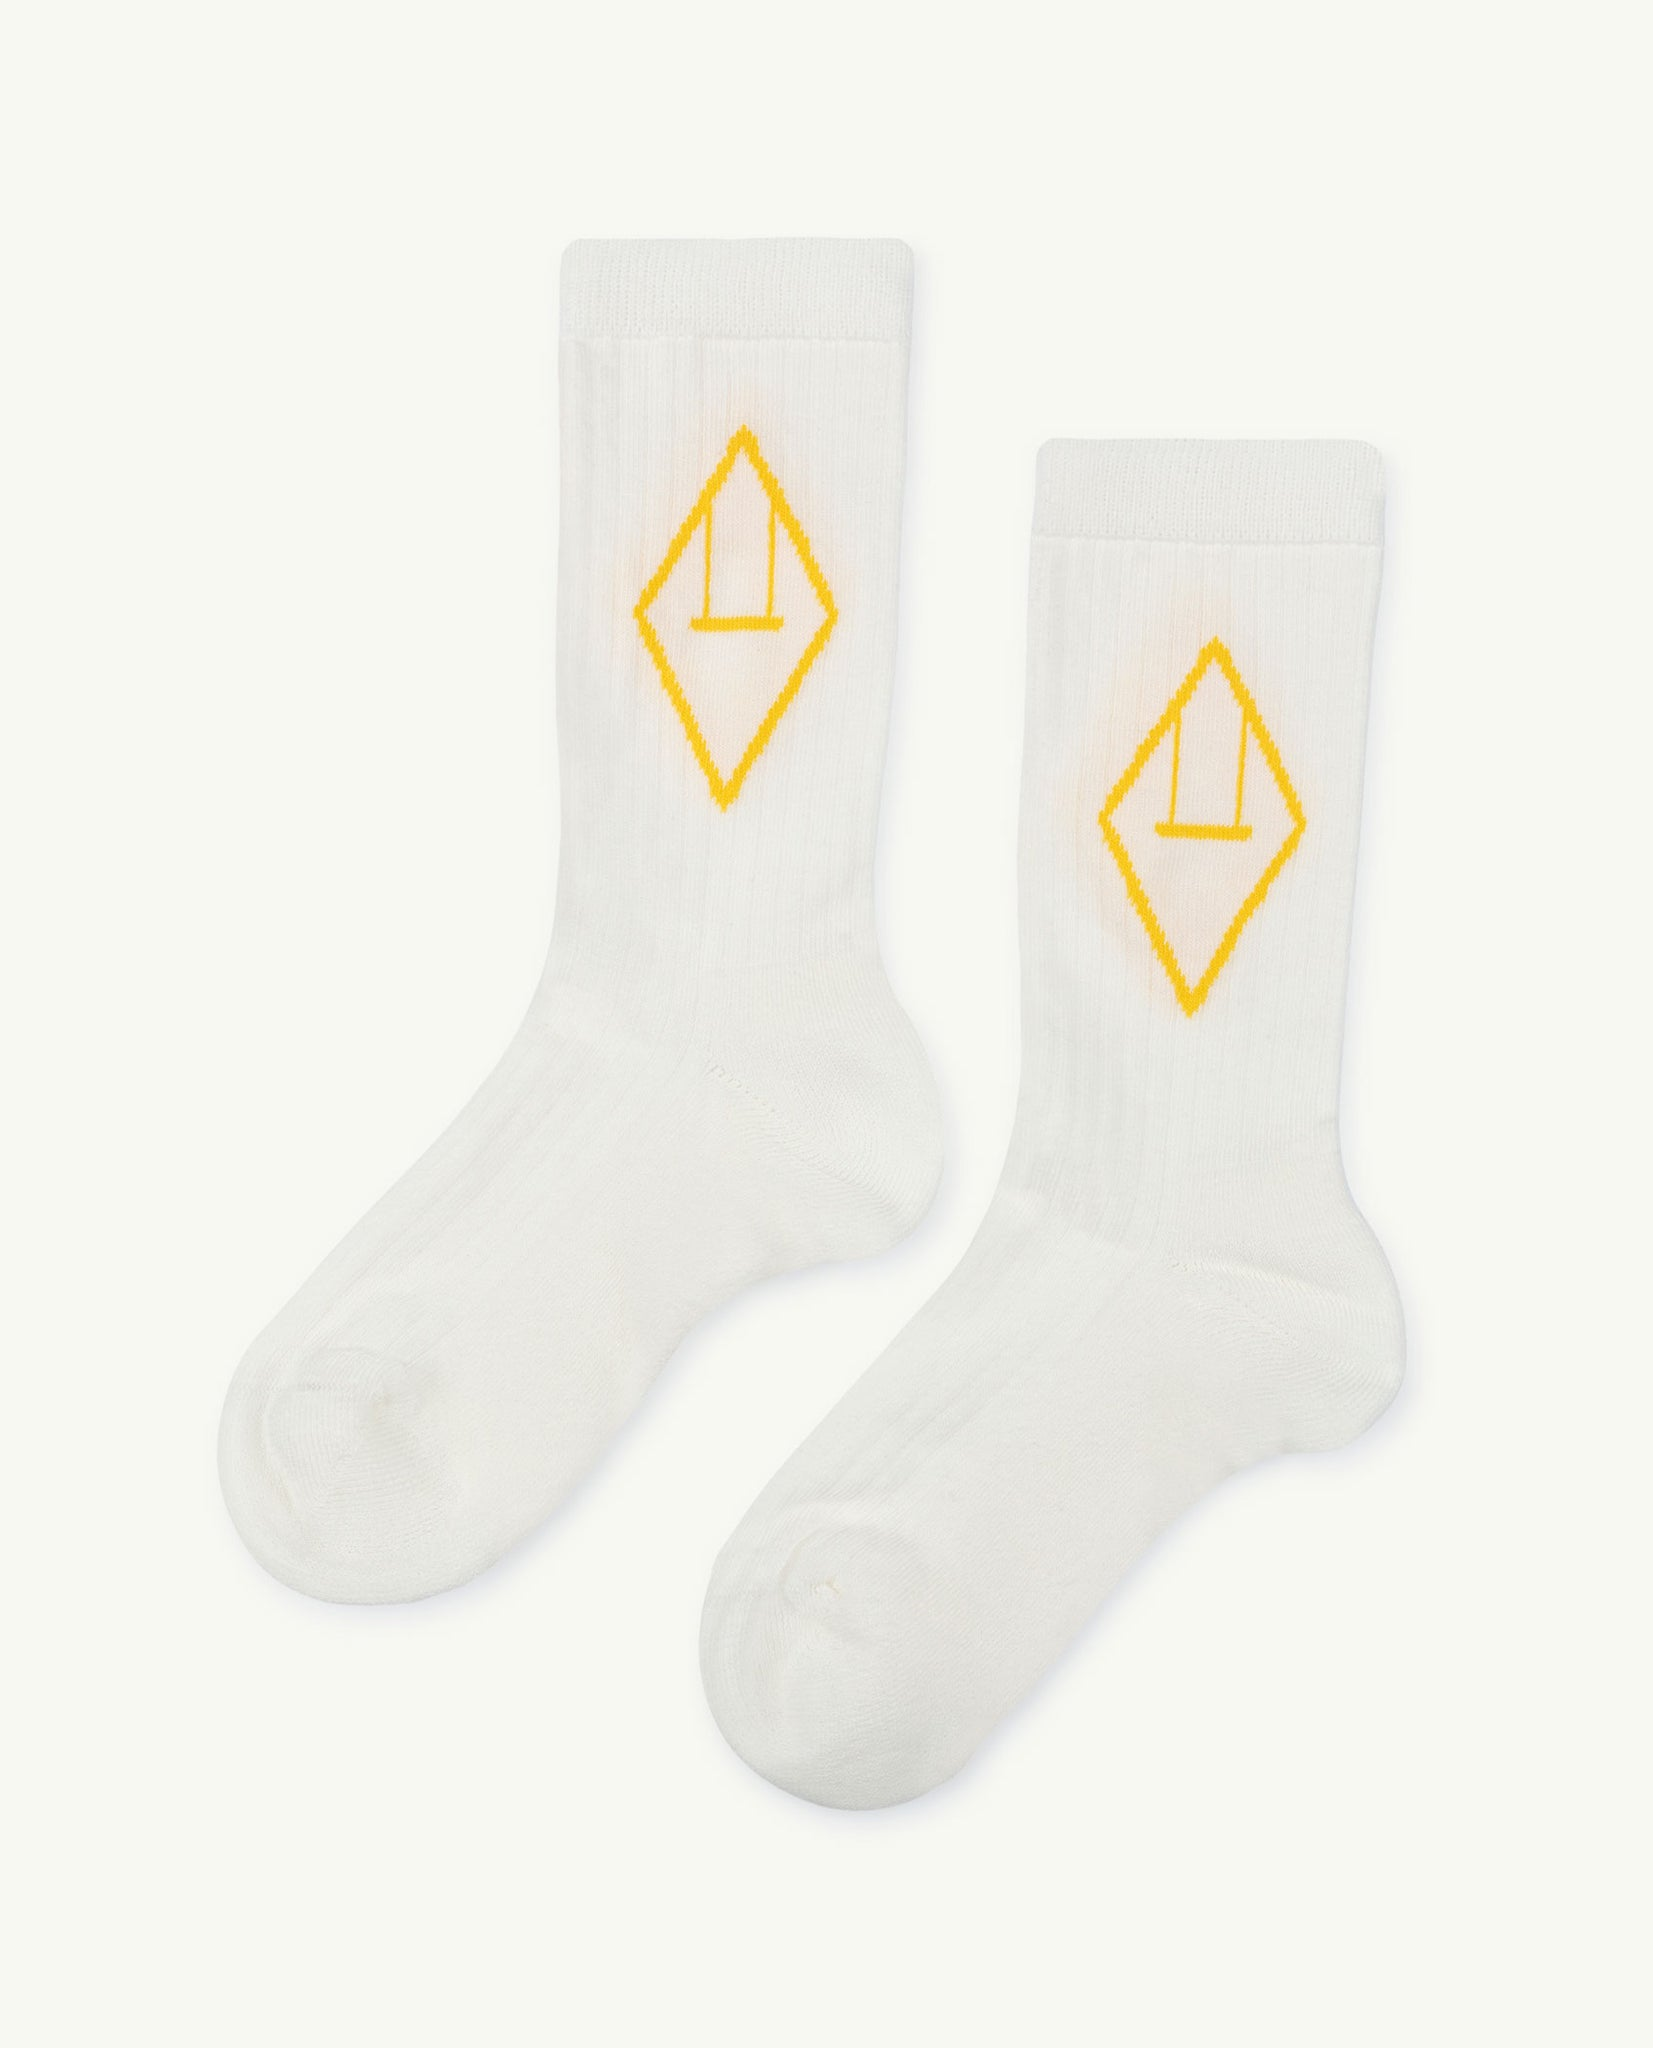 SNAIL SOCKS // YELLOW